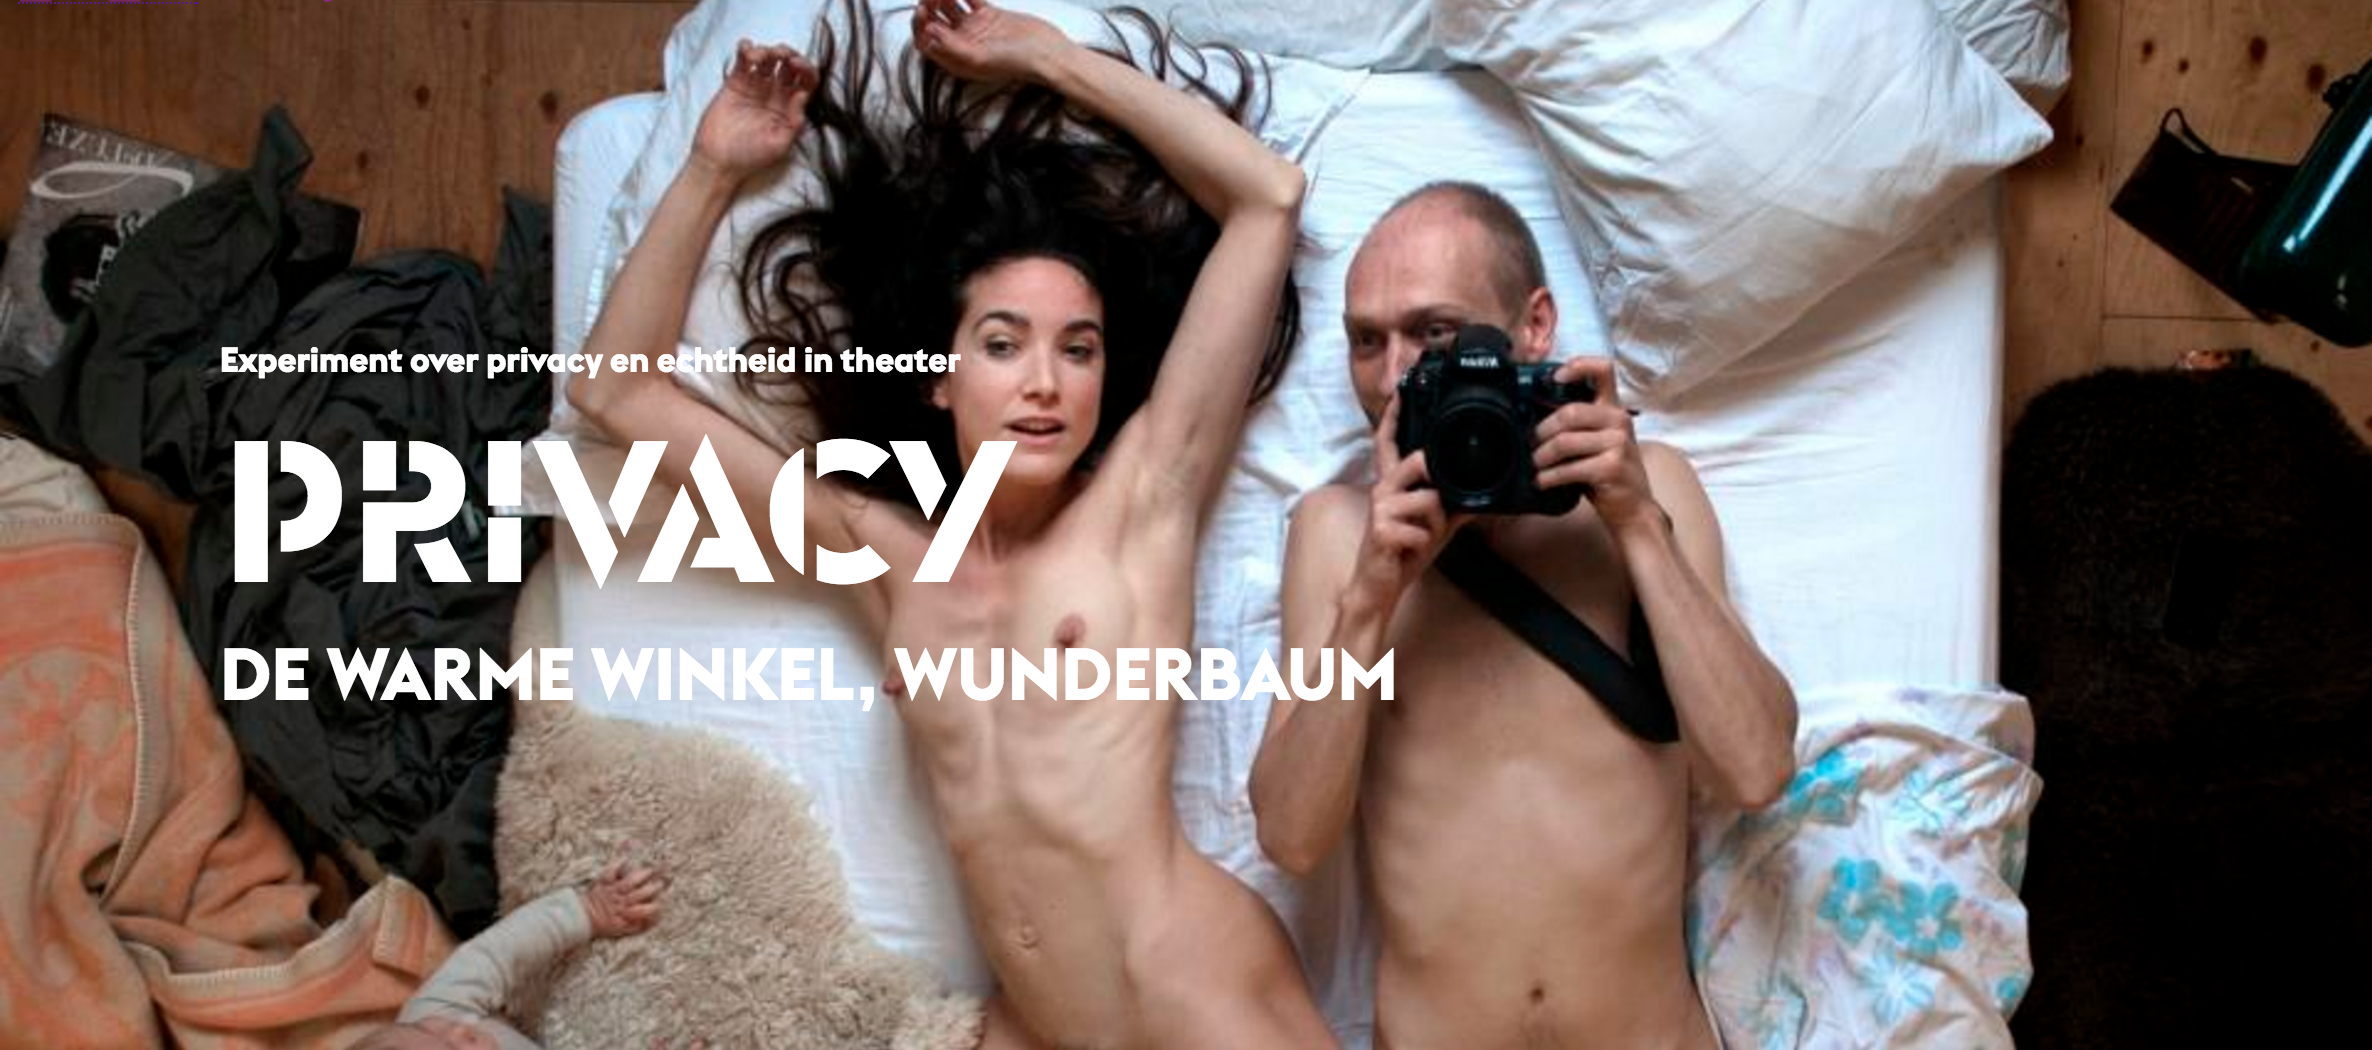 leaflet for Privacy, a play by actor's cooperatives de warme winkel and wunderbaum for holland festival